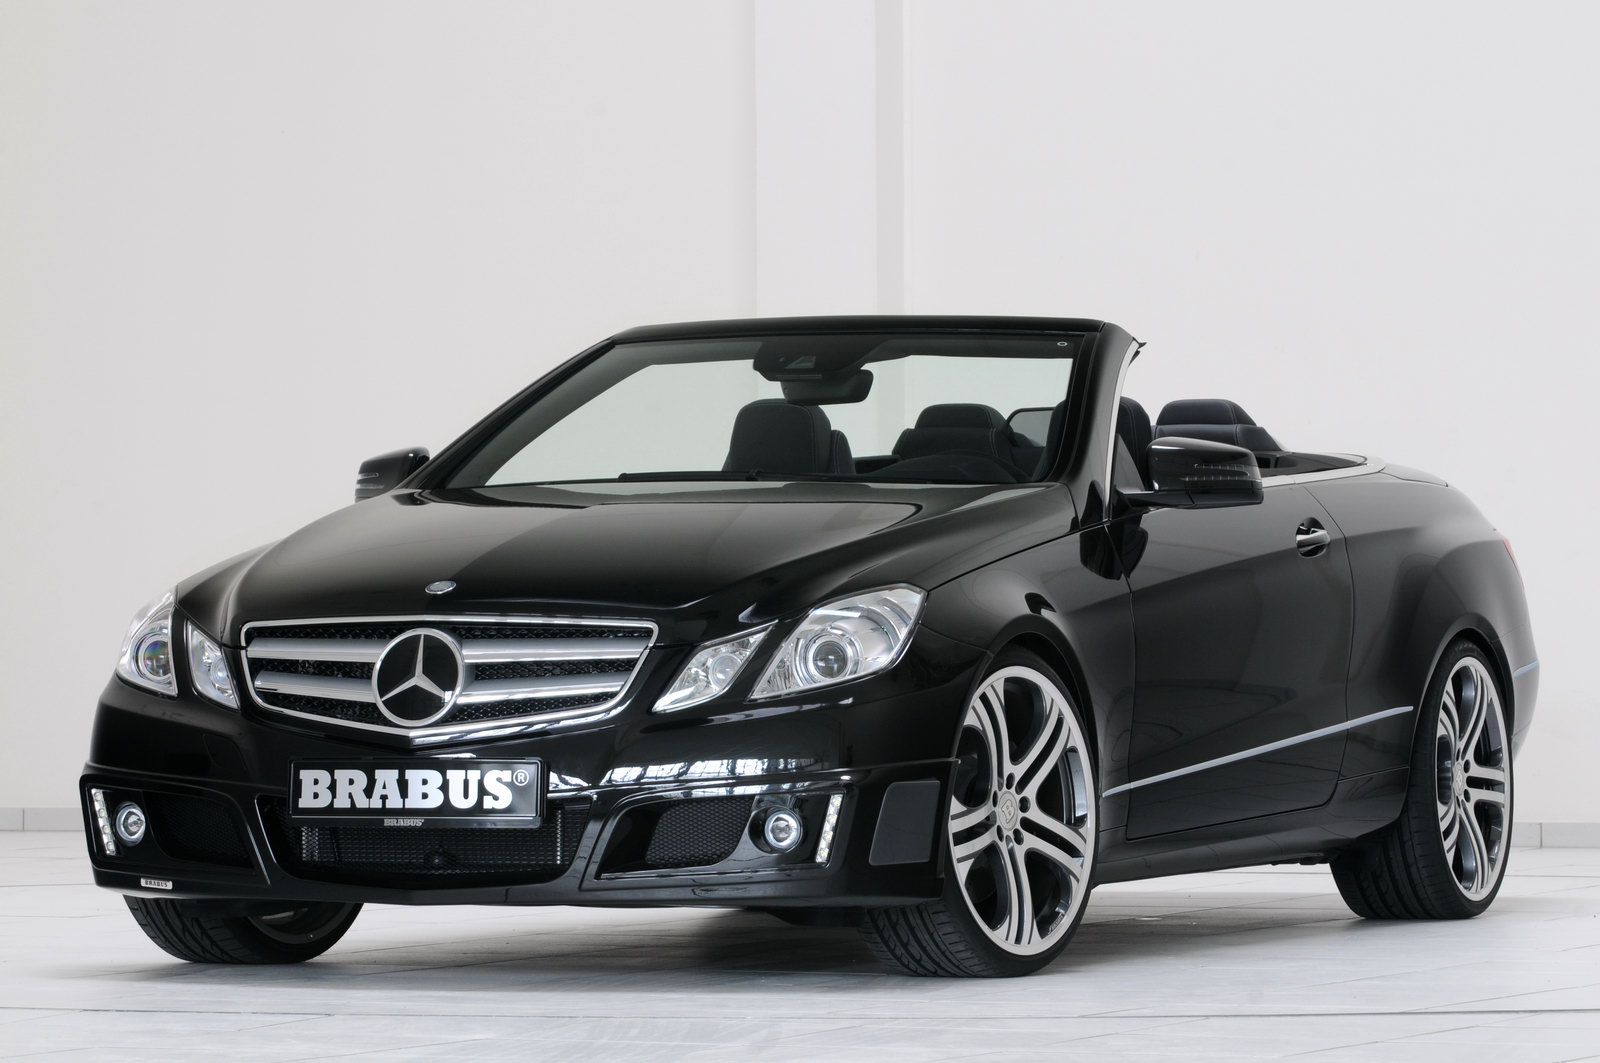 New alter cars brabus does the new mercedes benz e class for Mercedes benz sports car convertible